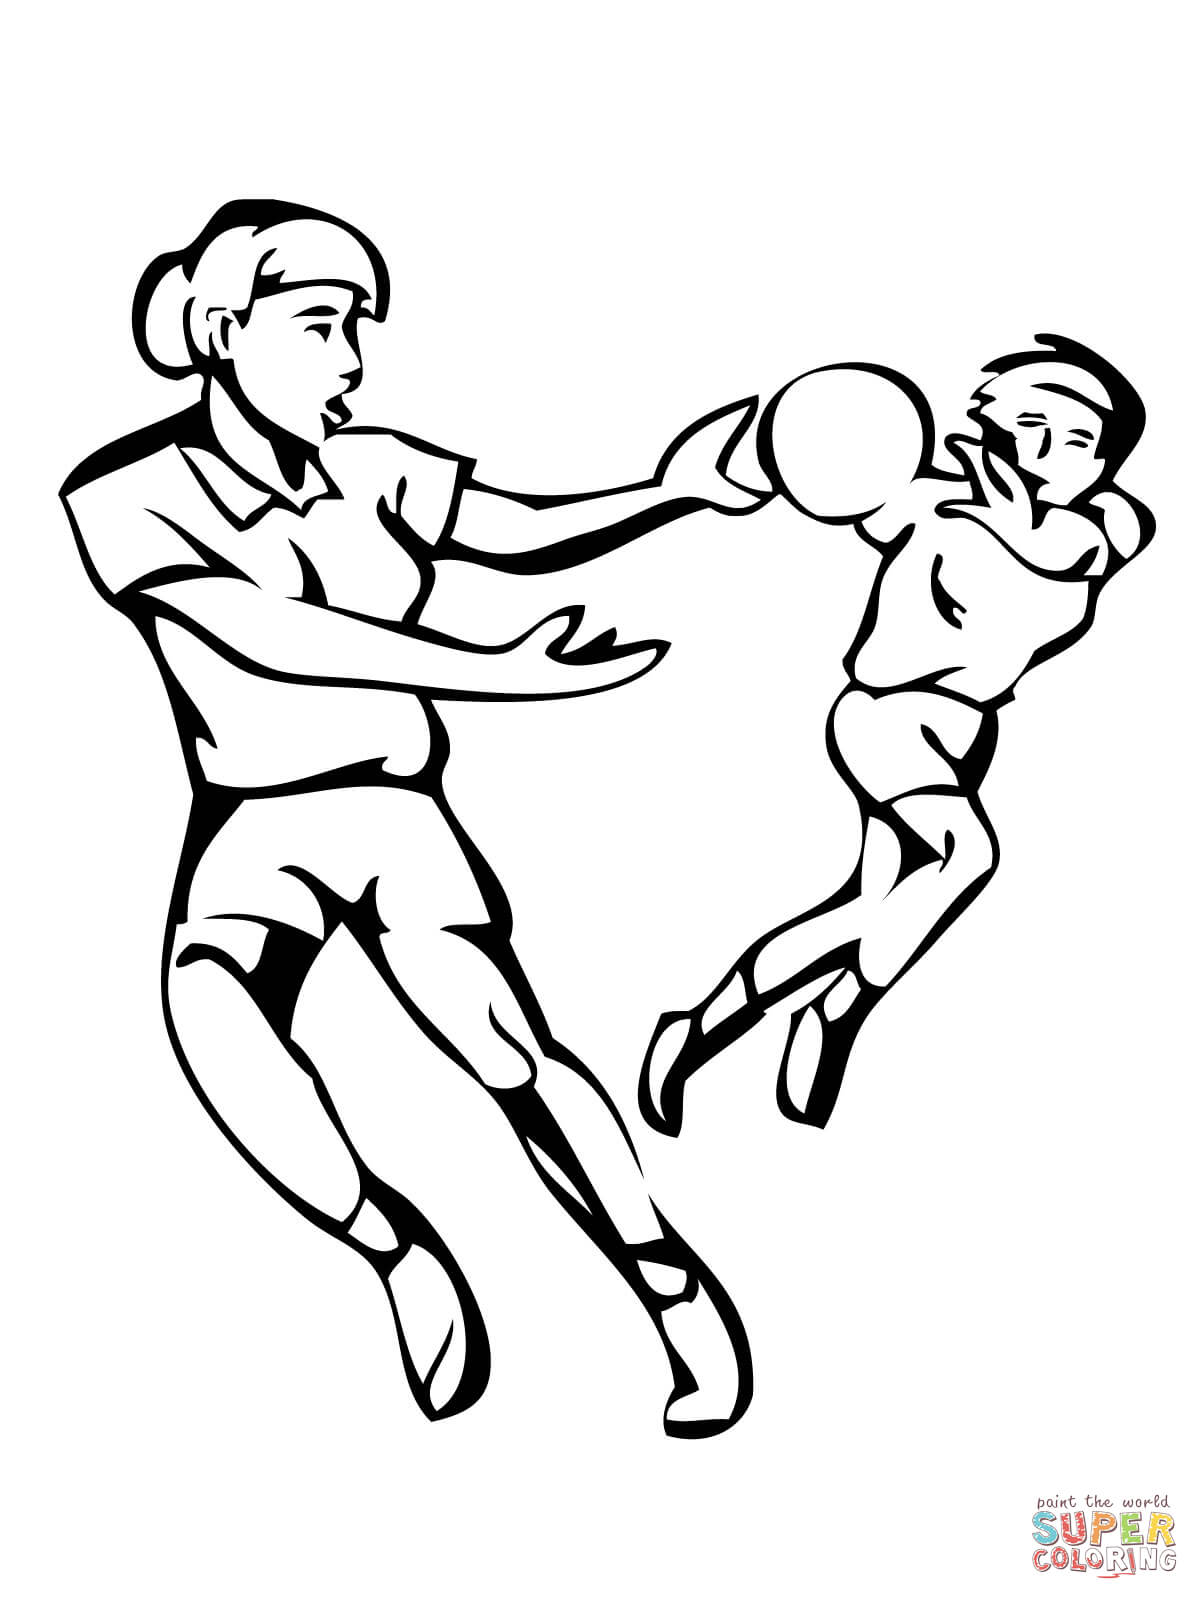 printable pictures of handball page,printable,coloring pages